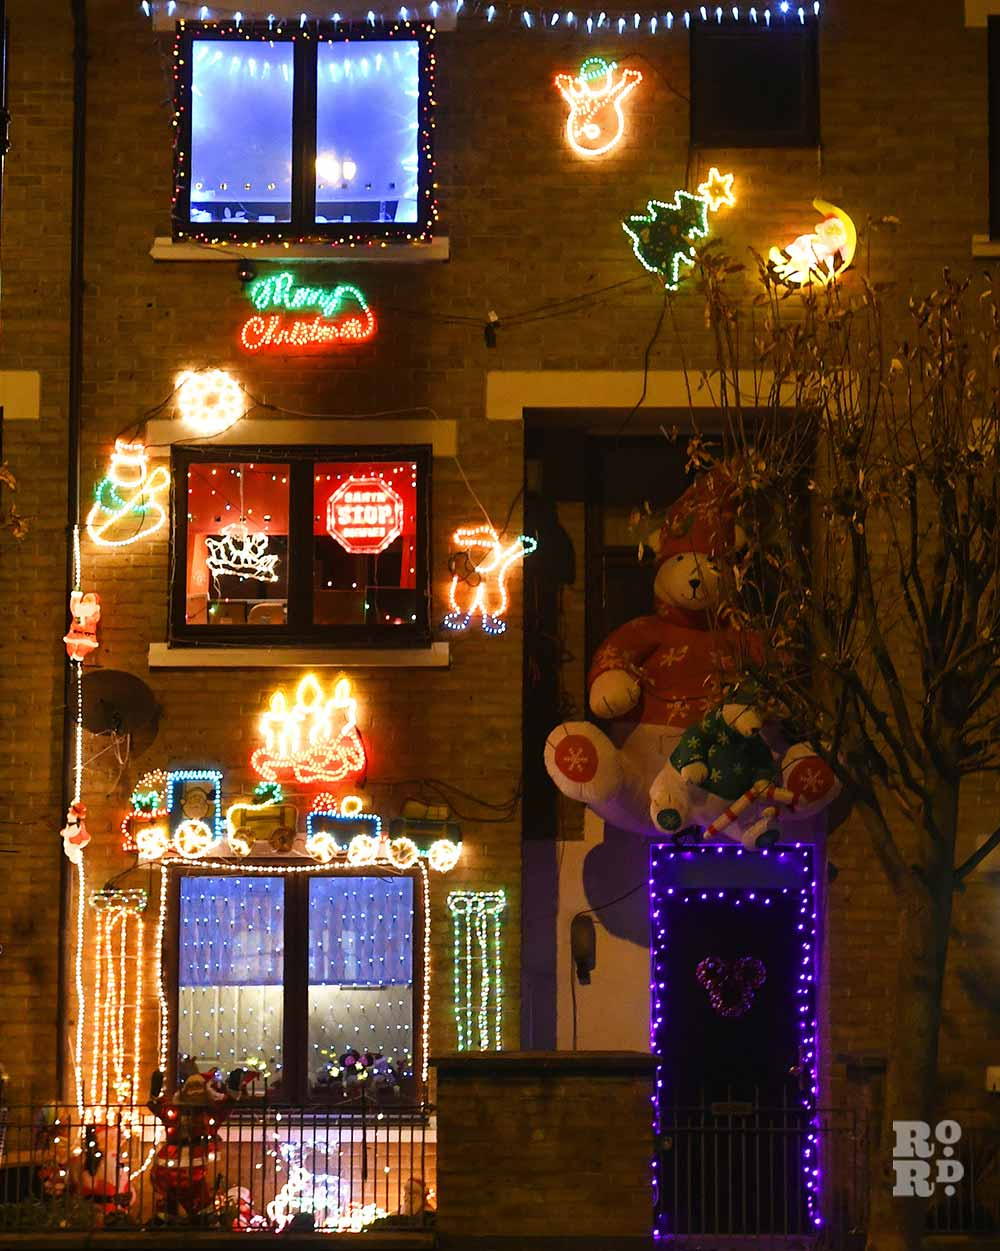 Christmas lights Roman Road Phil Verney Old Ford Road house